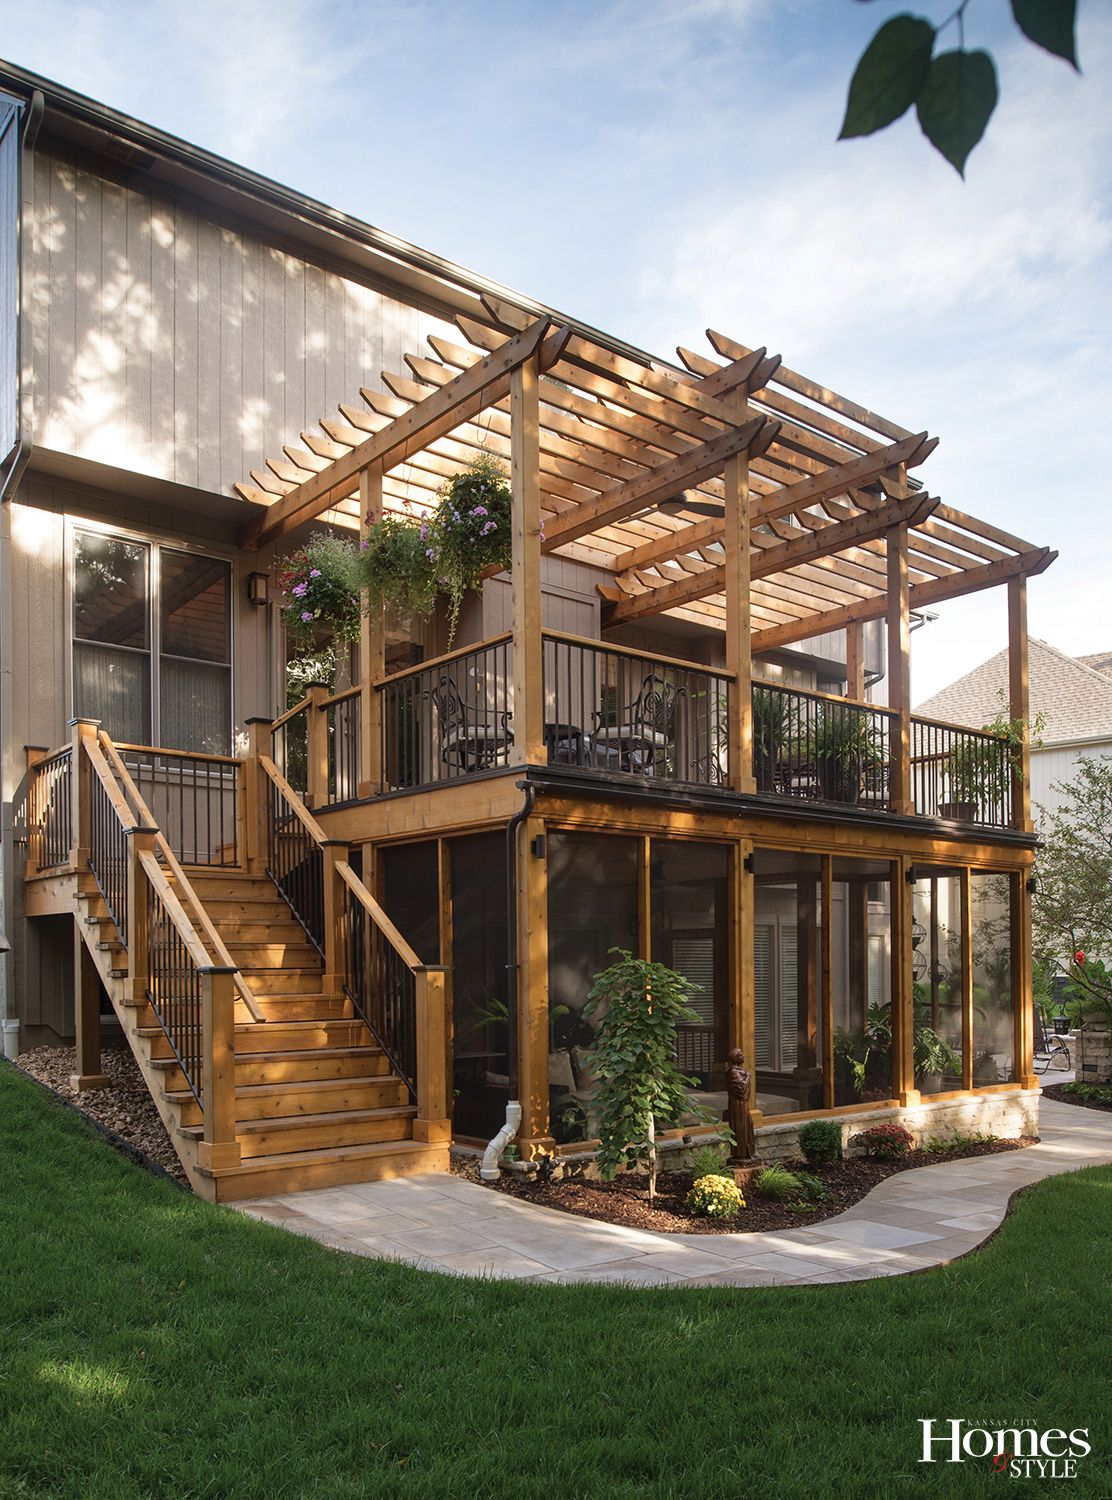 Screened in porch underneath the deck pk janthalord house design also best images asian small homes tiny rh pinterest